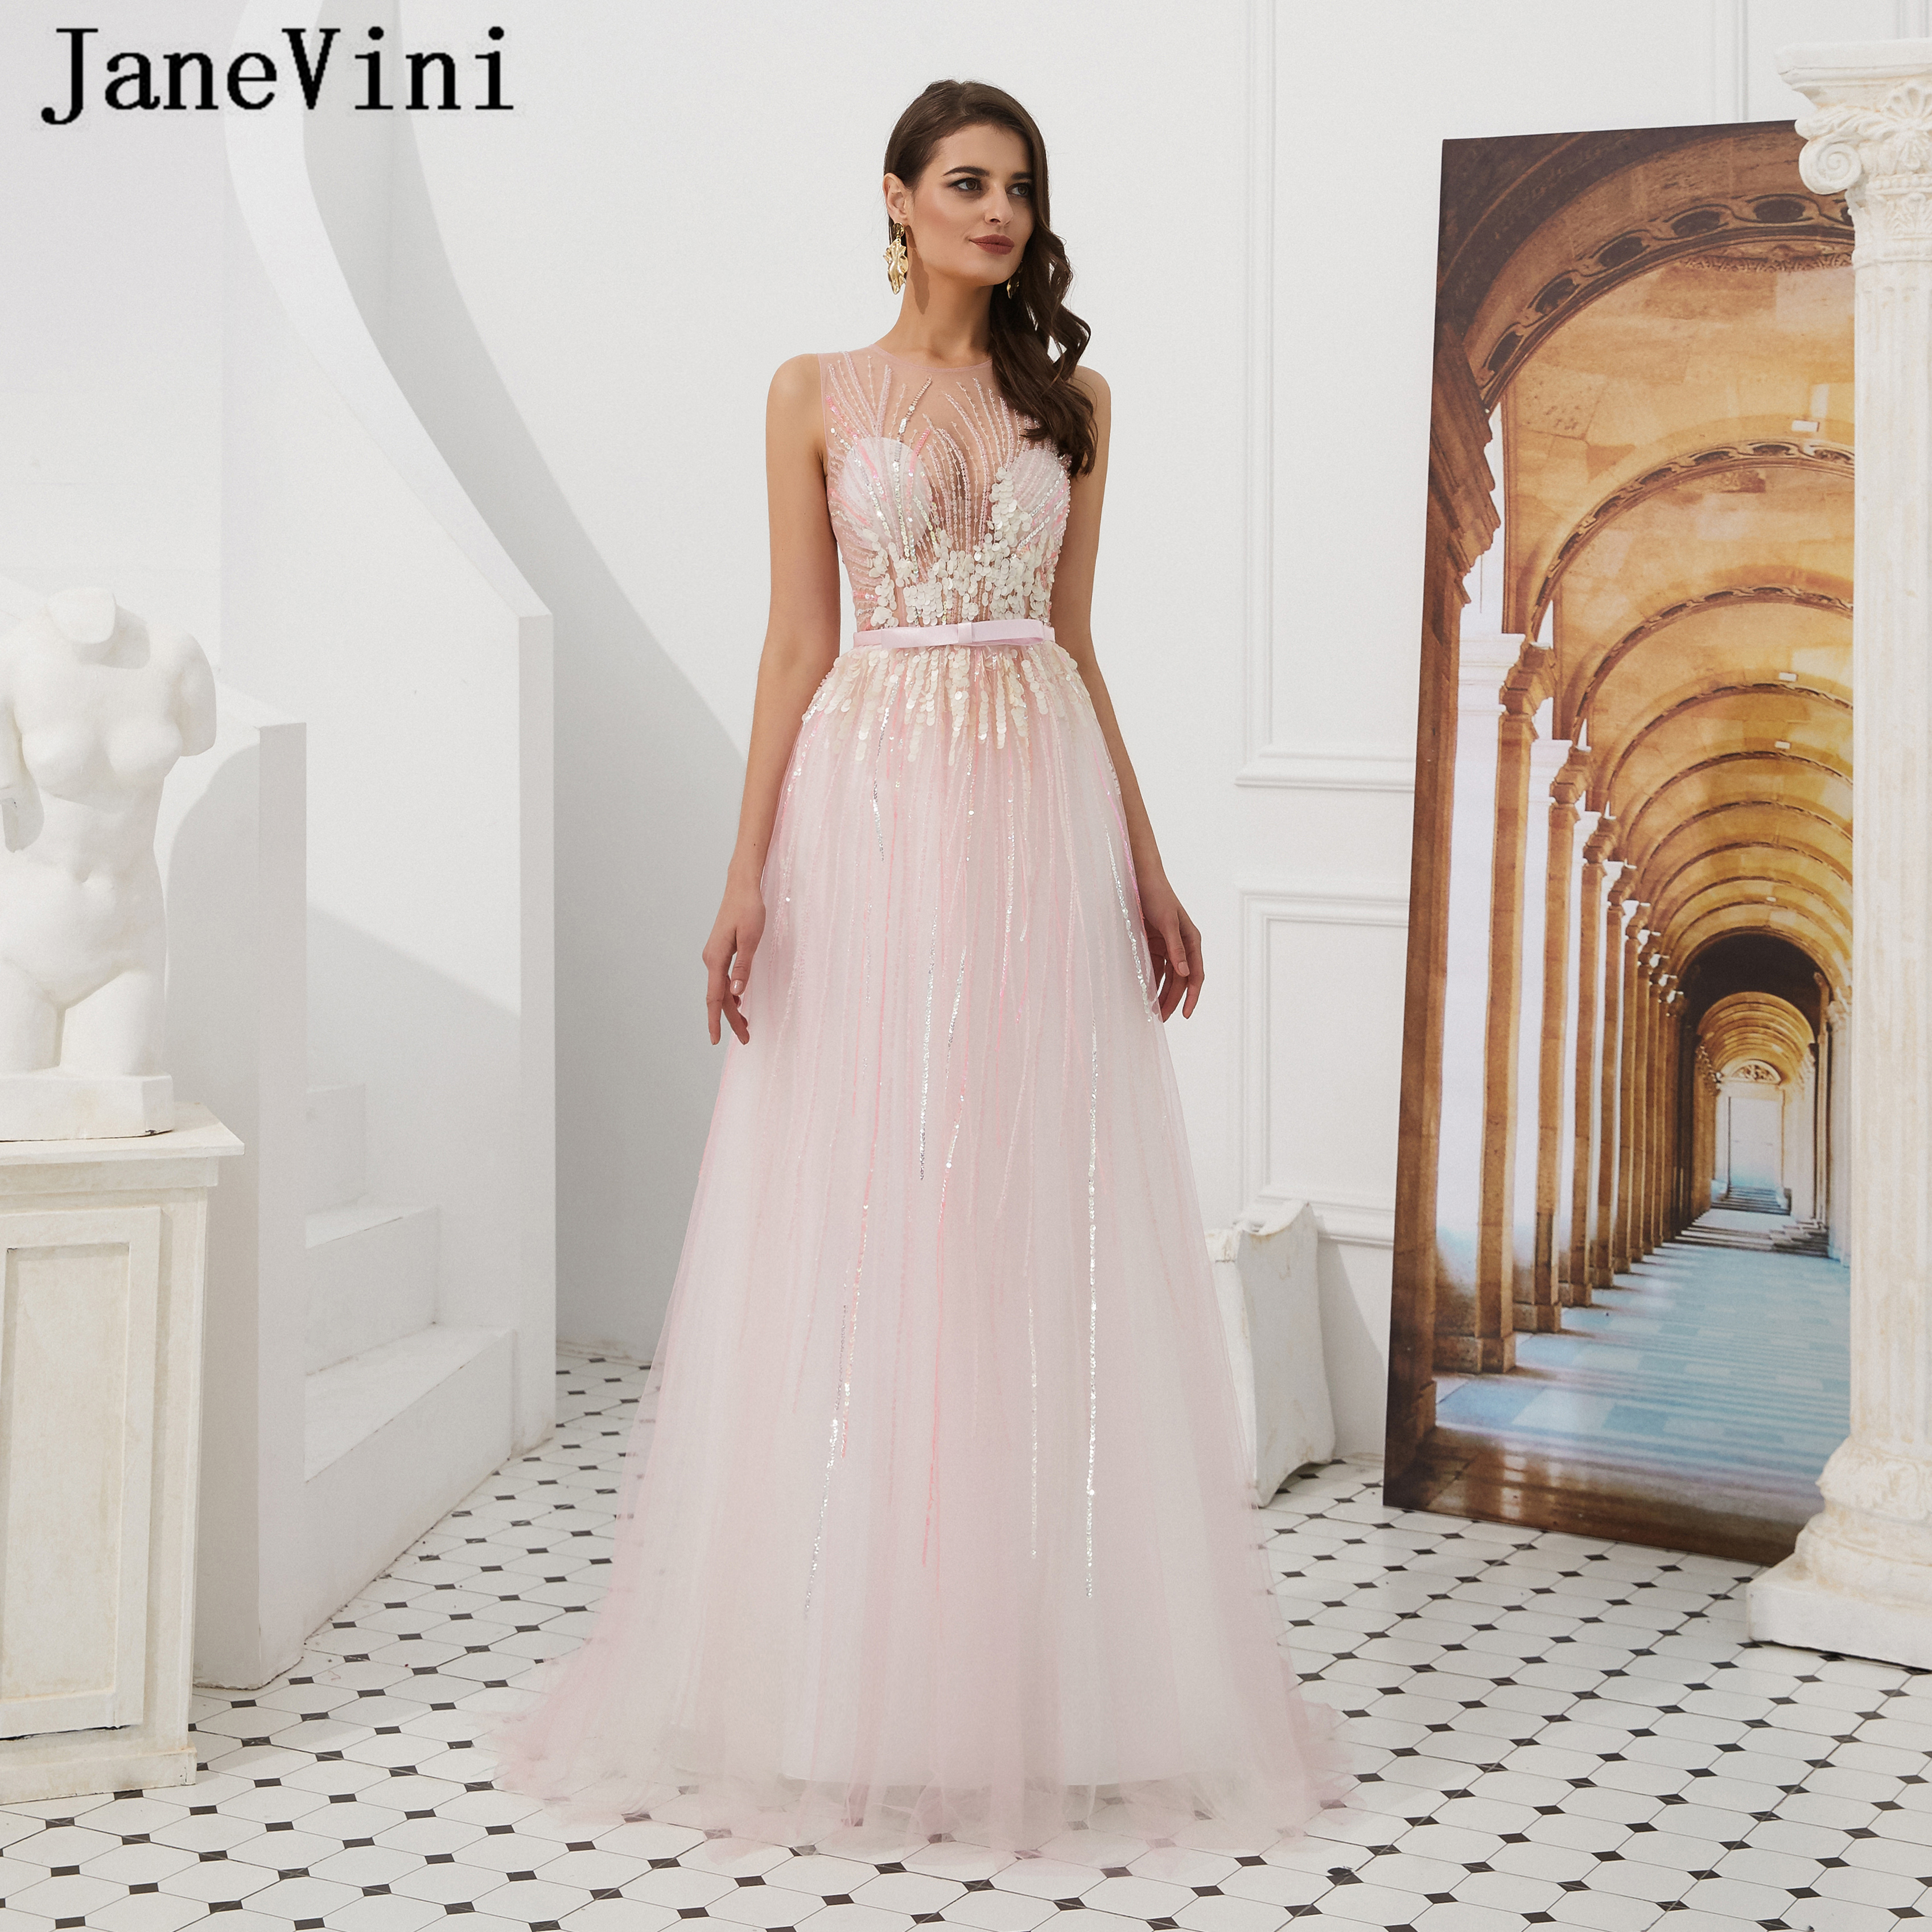 JaneVini Luxury Light Pink Heavy Beading Long   Prom     Dresses   for Women 2019 Sparkle Sequined Sheer Back A Line Formal Party Gowns